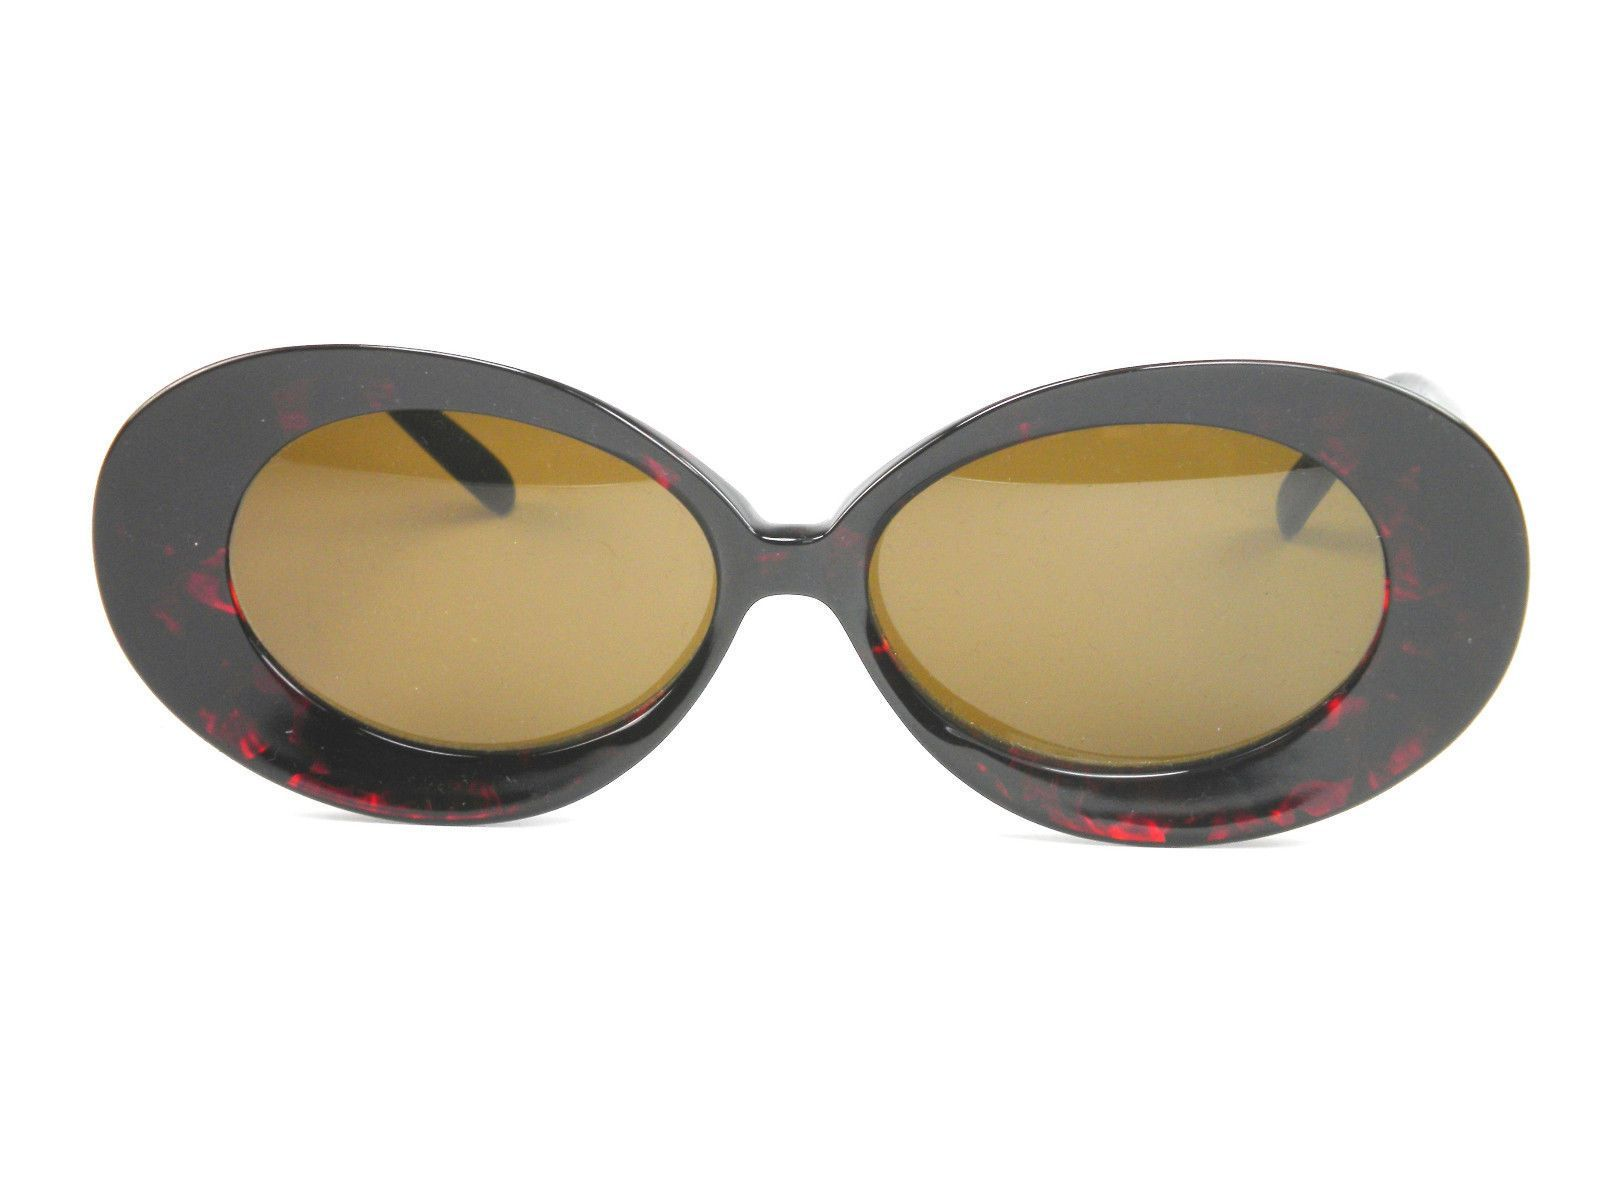 8cbbe2a791 Womens Club La 8251 Jackie O Vintage 60S 70S Oversized Oval Sunglasses  France